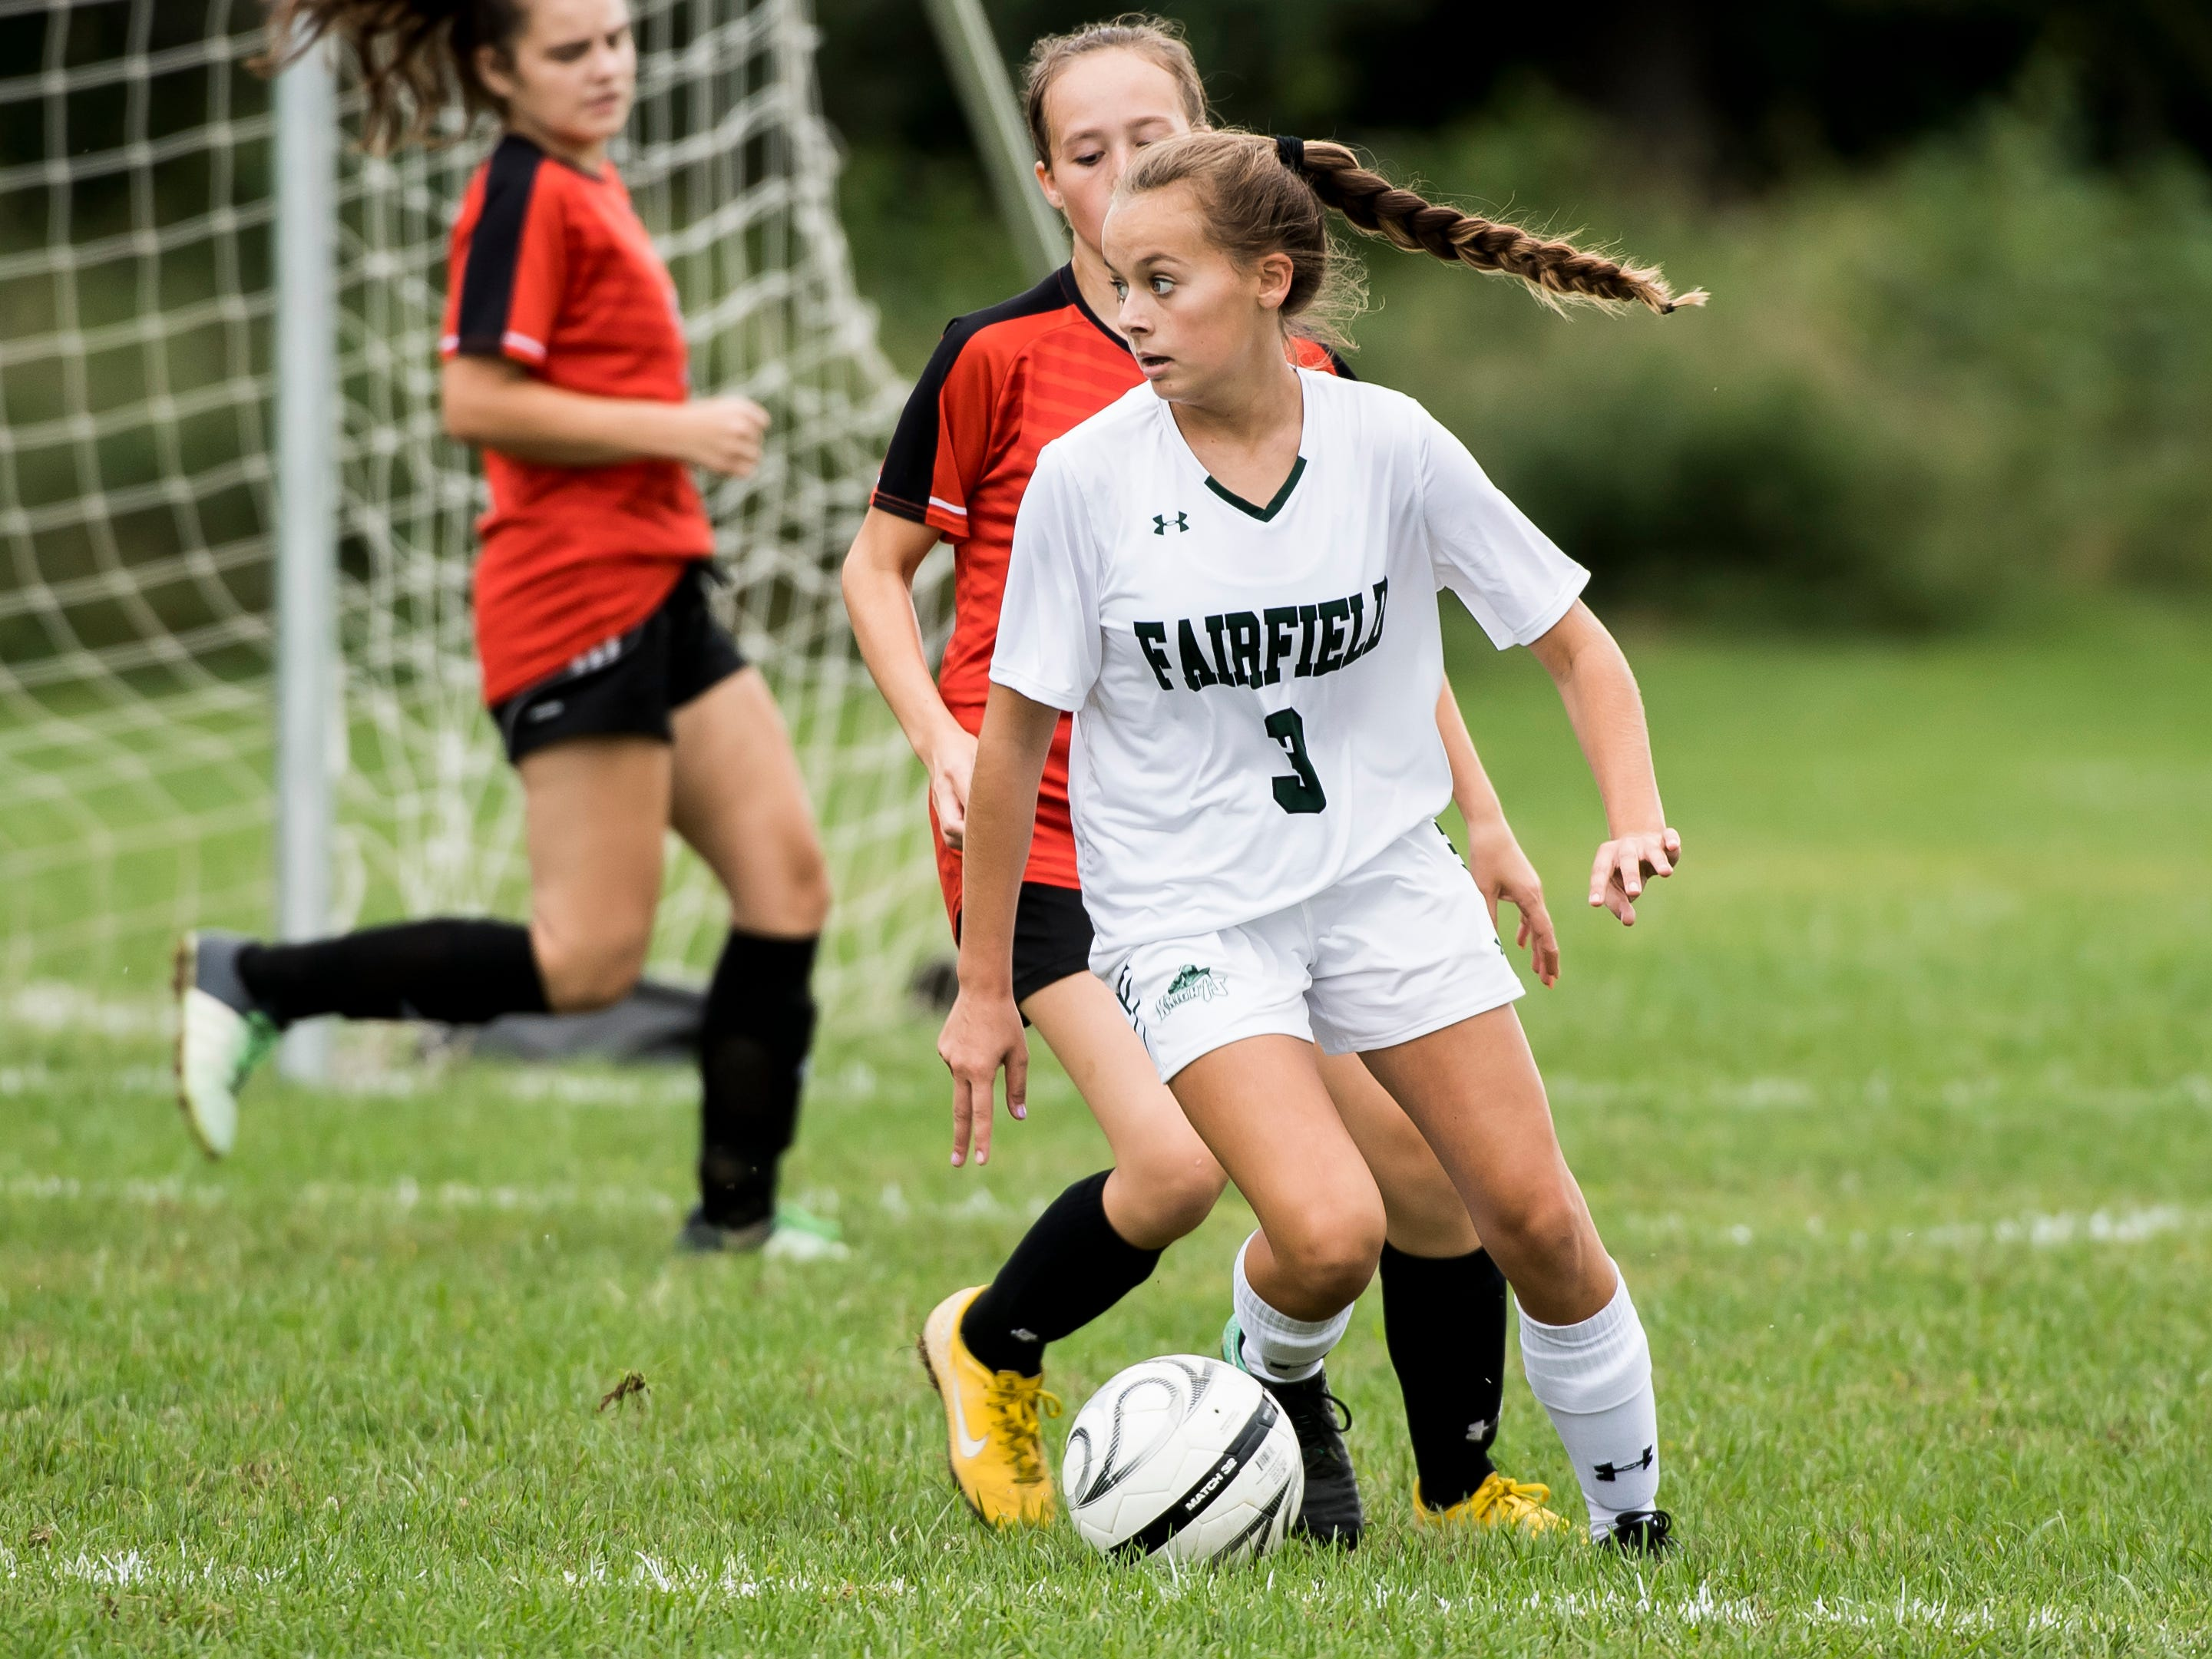 Fairfield's Emma Dennison dribbles the ball down the field during play against Hanover on Thursday, September 13, 2018. The Knights beat the Nighthawks 19-0.